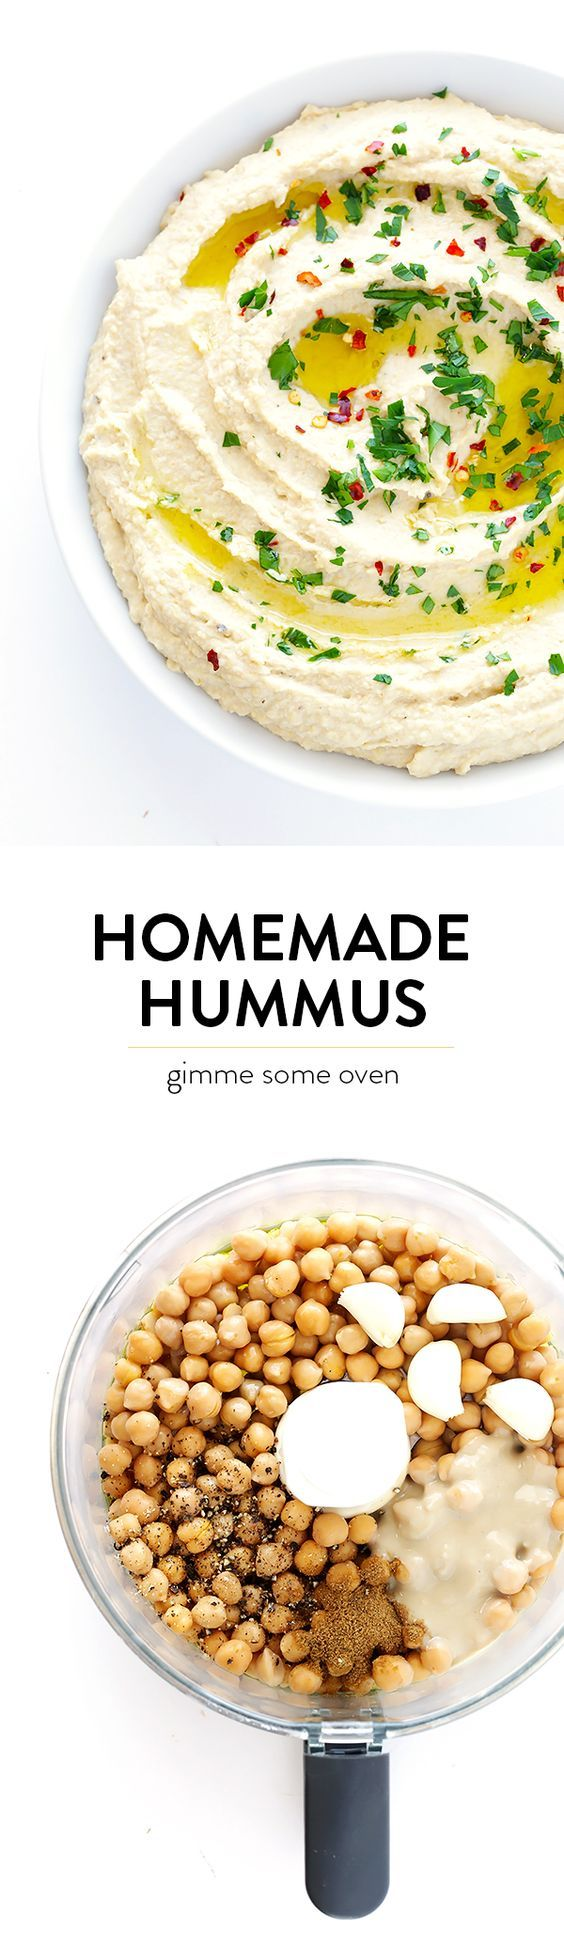 Learn how to make delicious homemade hummus with this classic (and super-easy) recipe!  It's ready to go in just 5 minutes! | gimmesomeoven.com